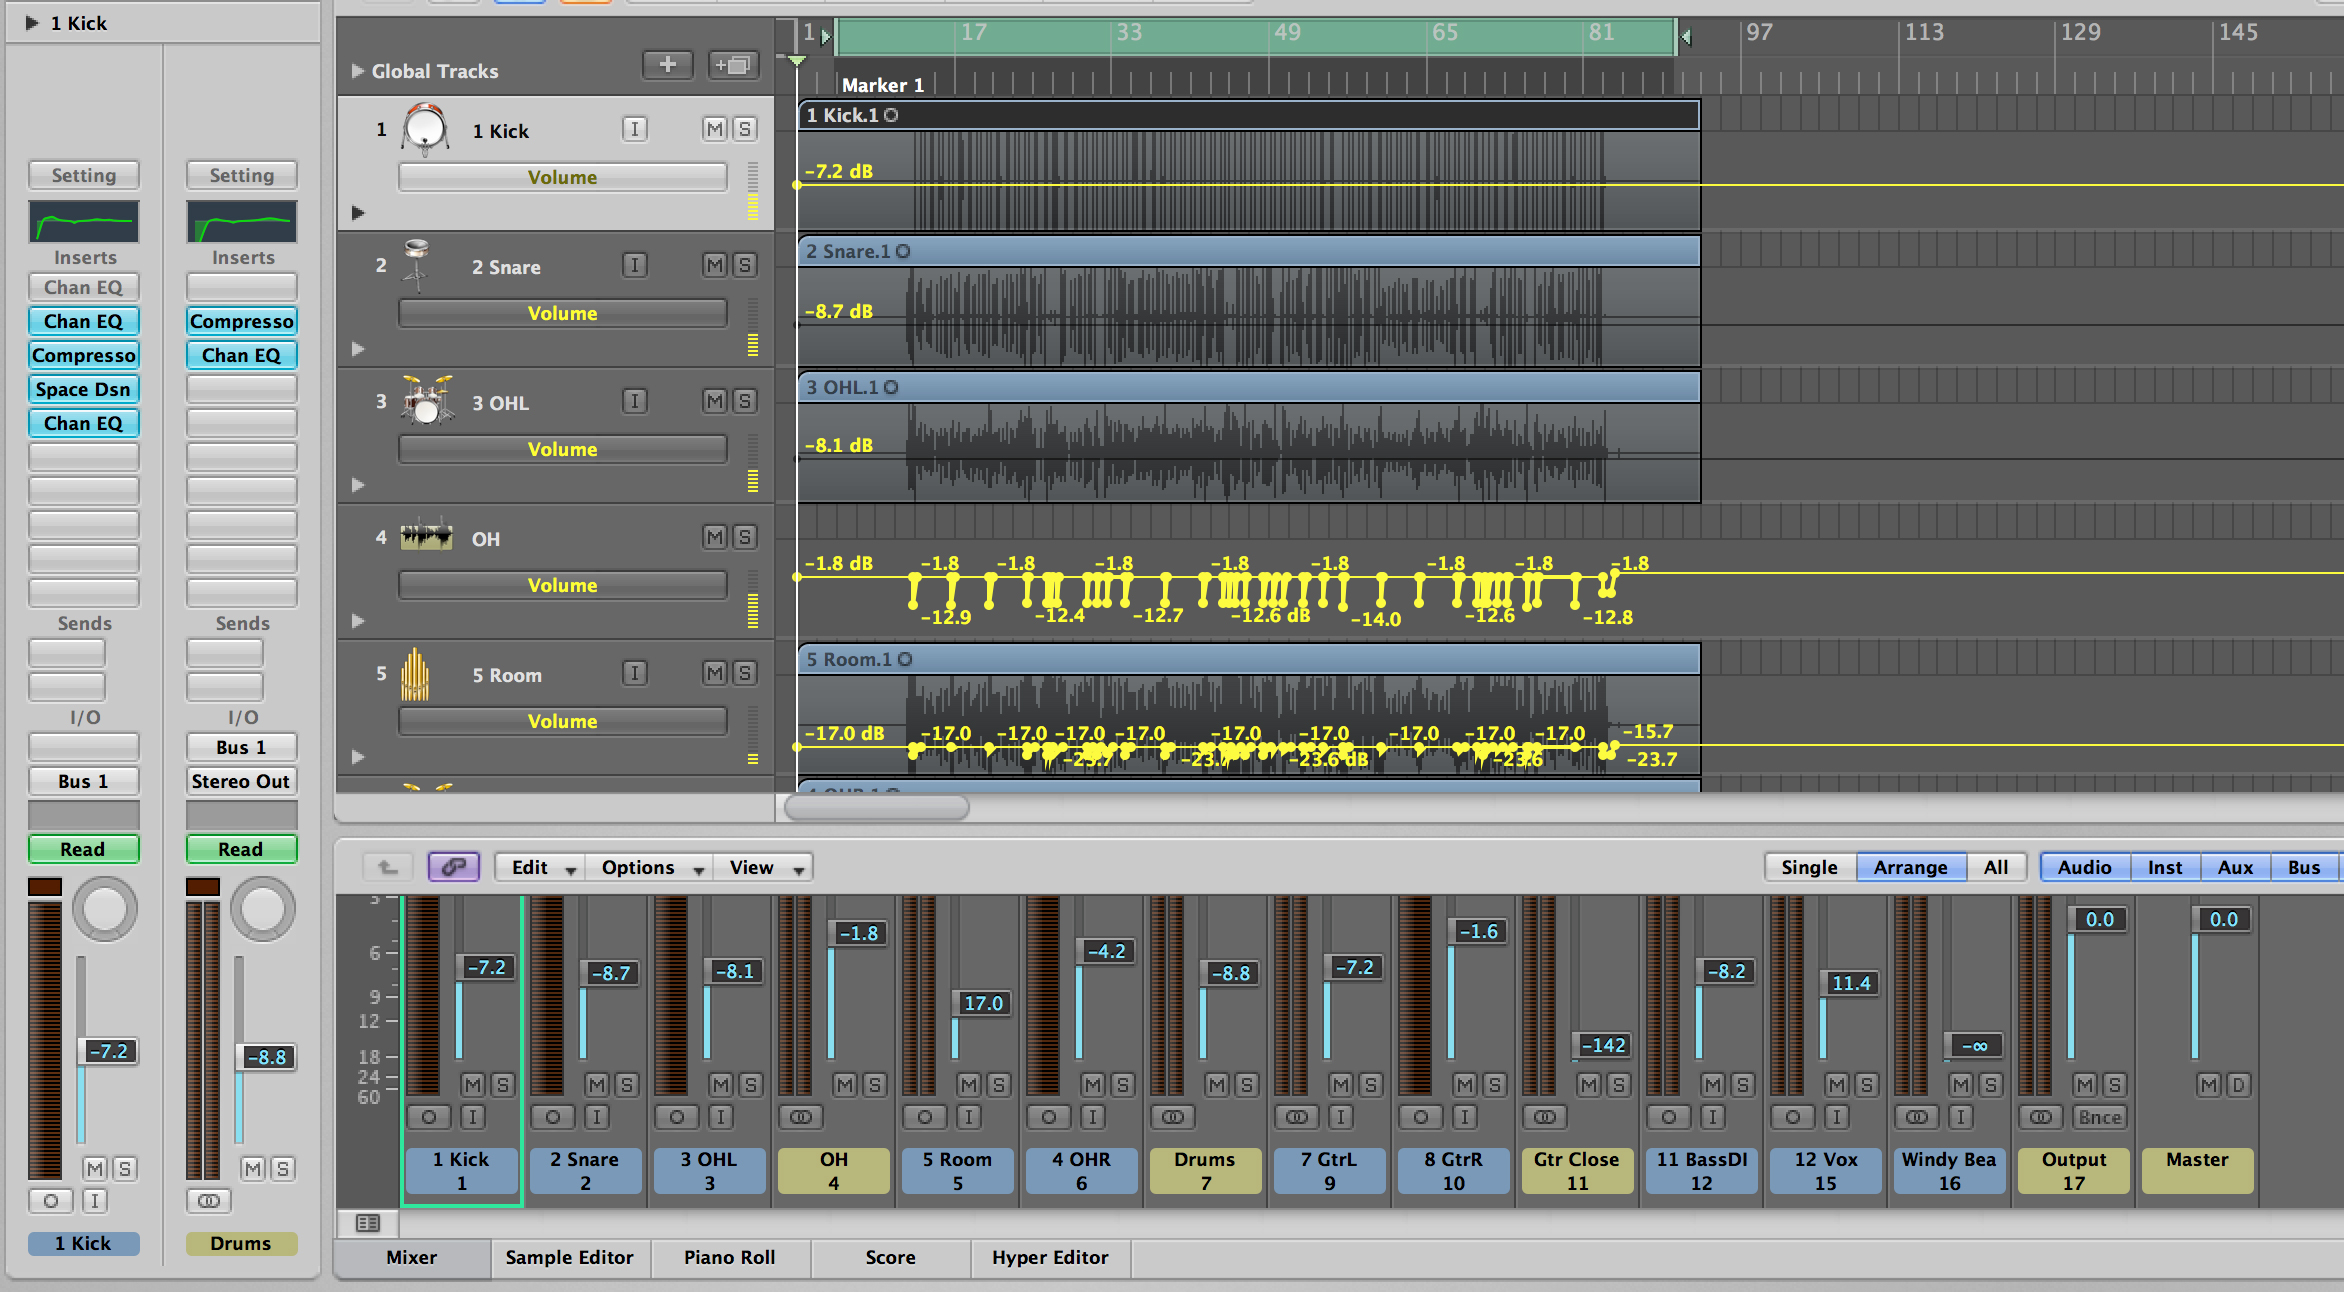 professionally edit, mix and master your tracks